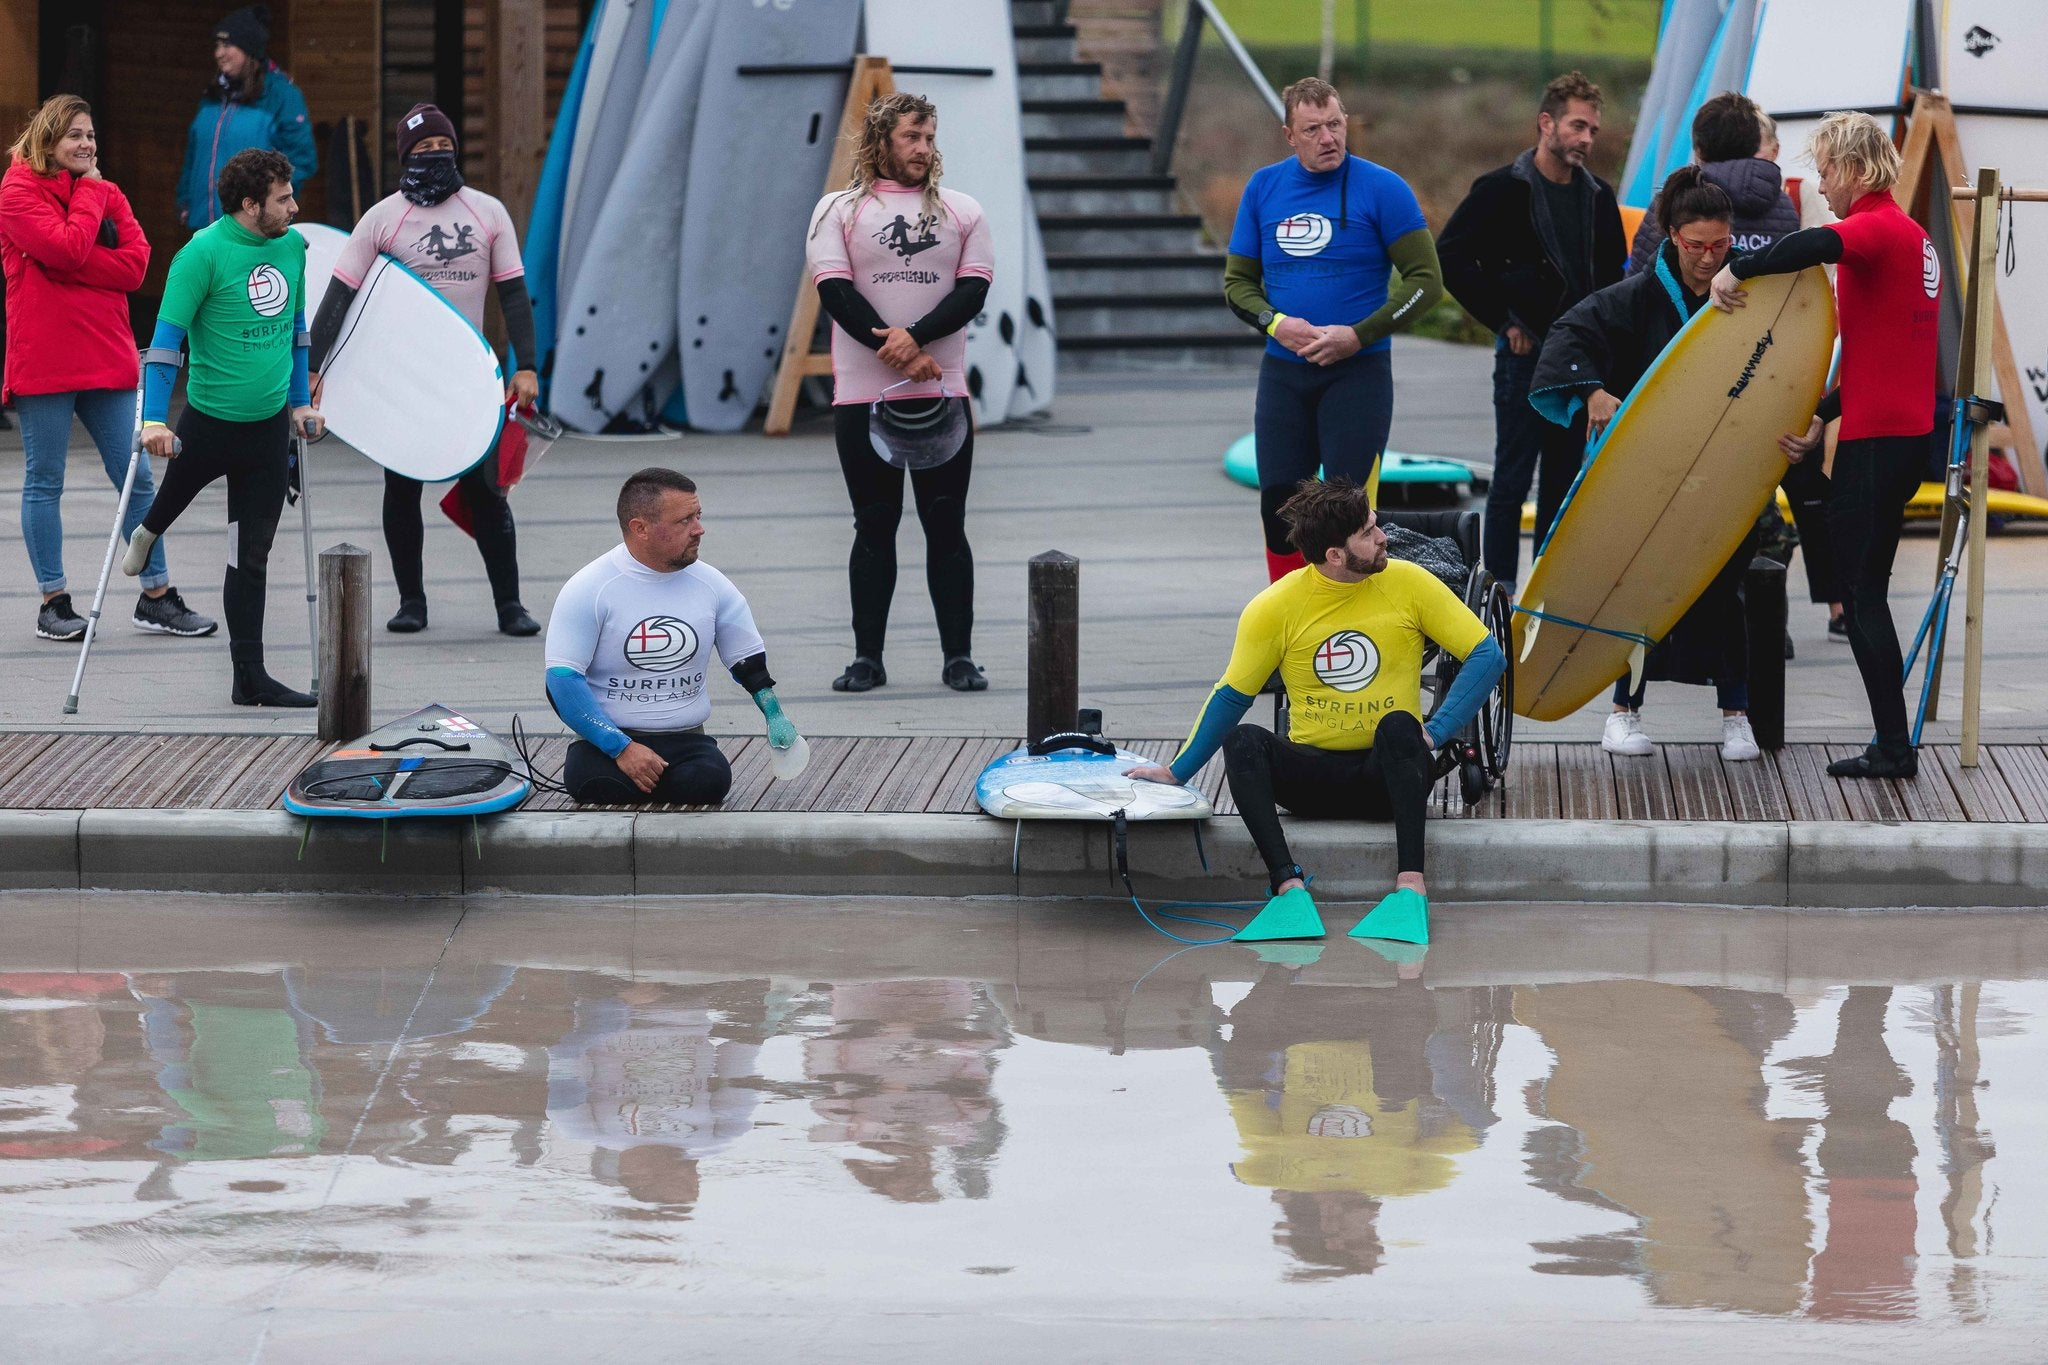 Competitors waiting to surf at the 2020 English Adaptive Surf Open